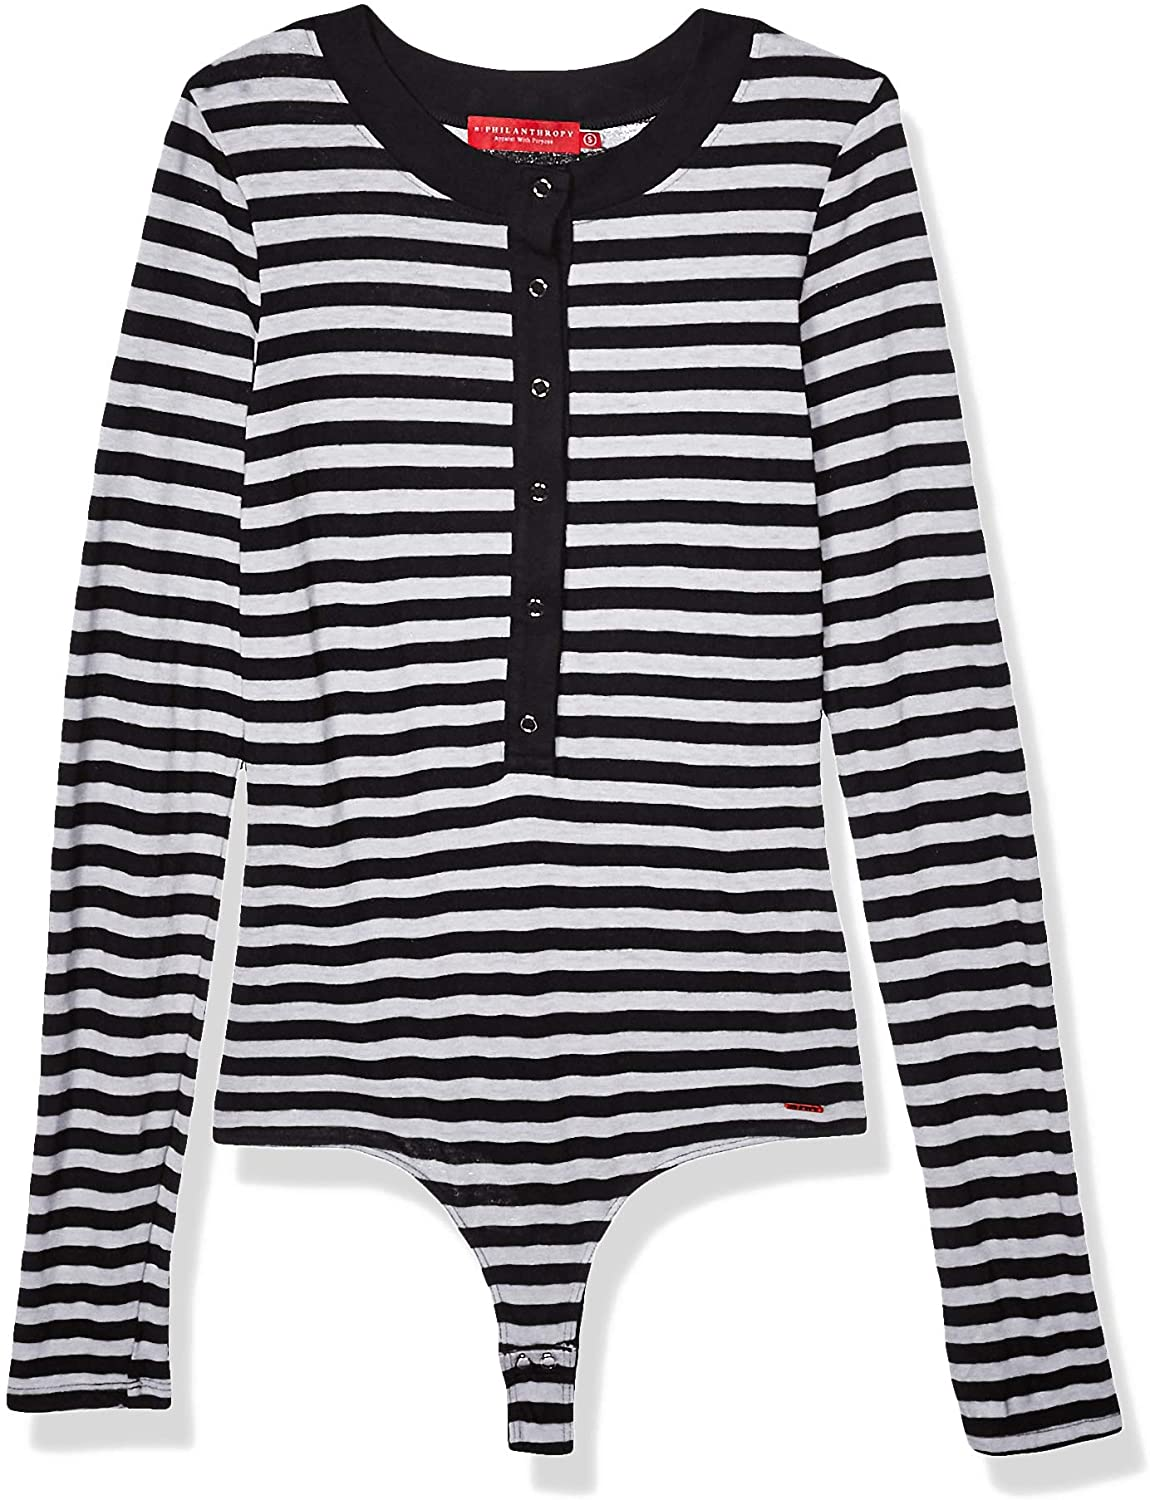 n:PHILANTHROPY Women's Casual Bodysuit, Black White Monty, Extra Small